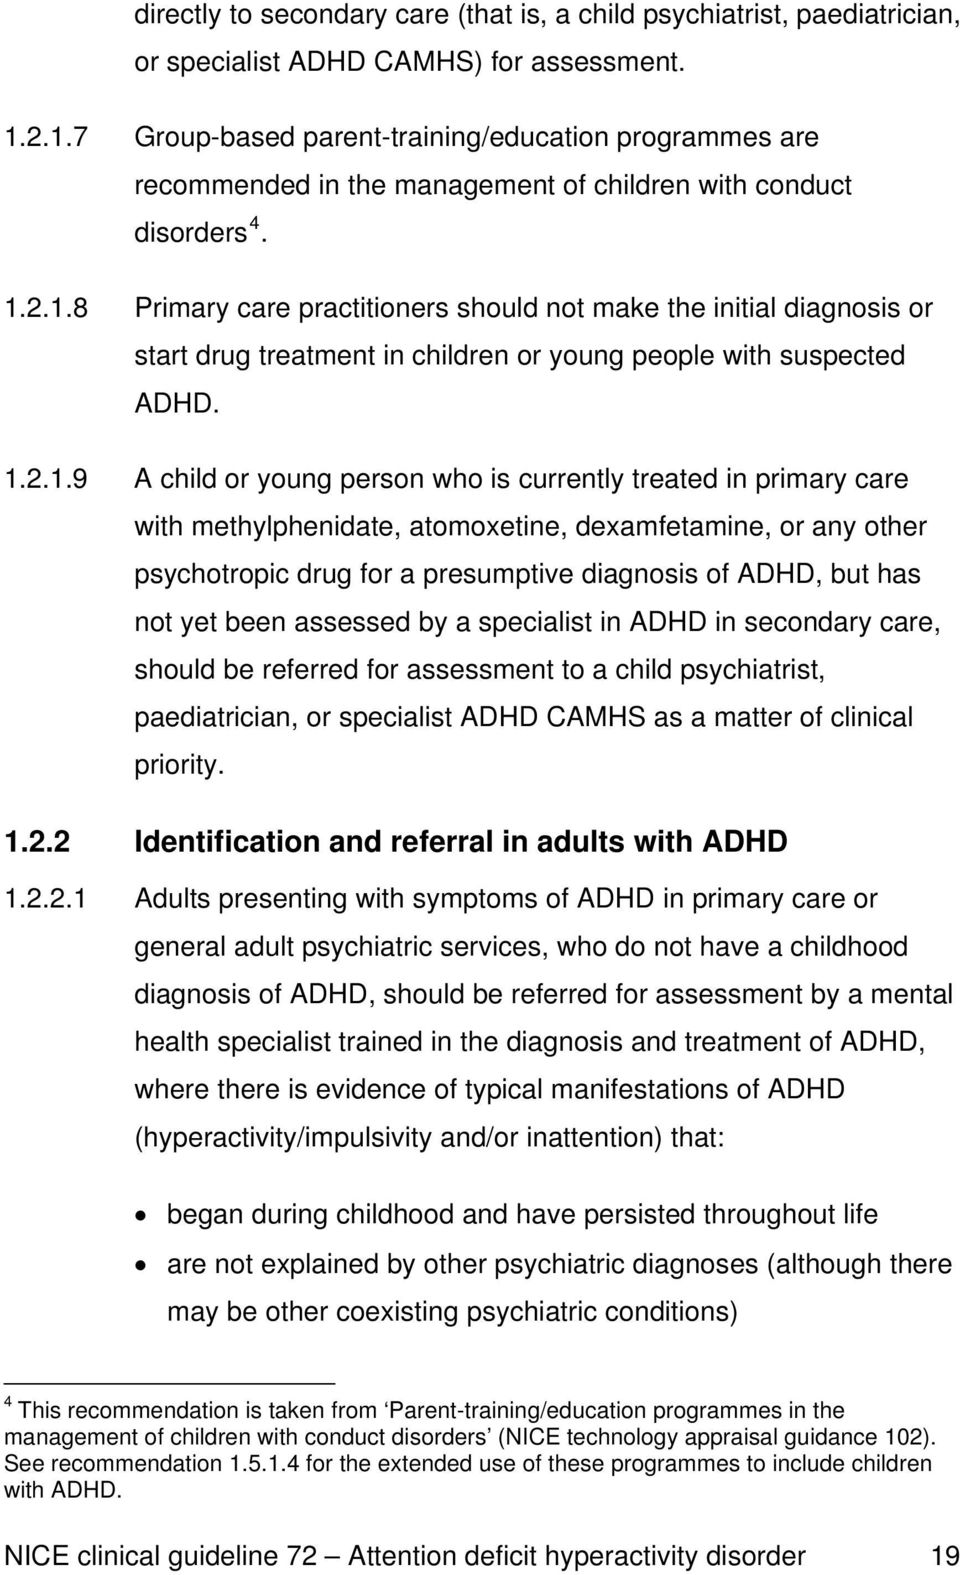 1.2.1.9 A child or young person who is currently treated in primary care with methylphenidate, atomoxetine, dexamfetamine, or any other psychotropic drug for a presumptive diagnosis of ADHD, but has